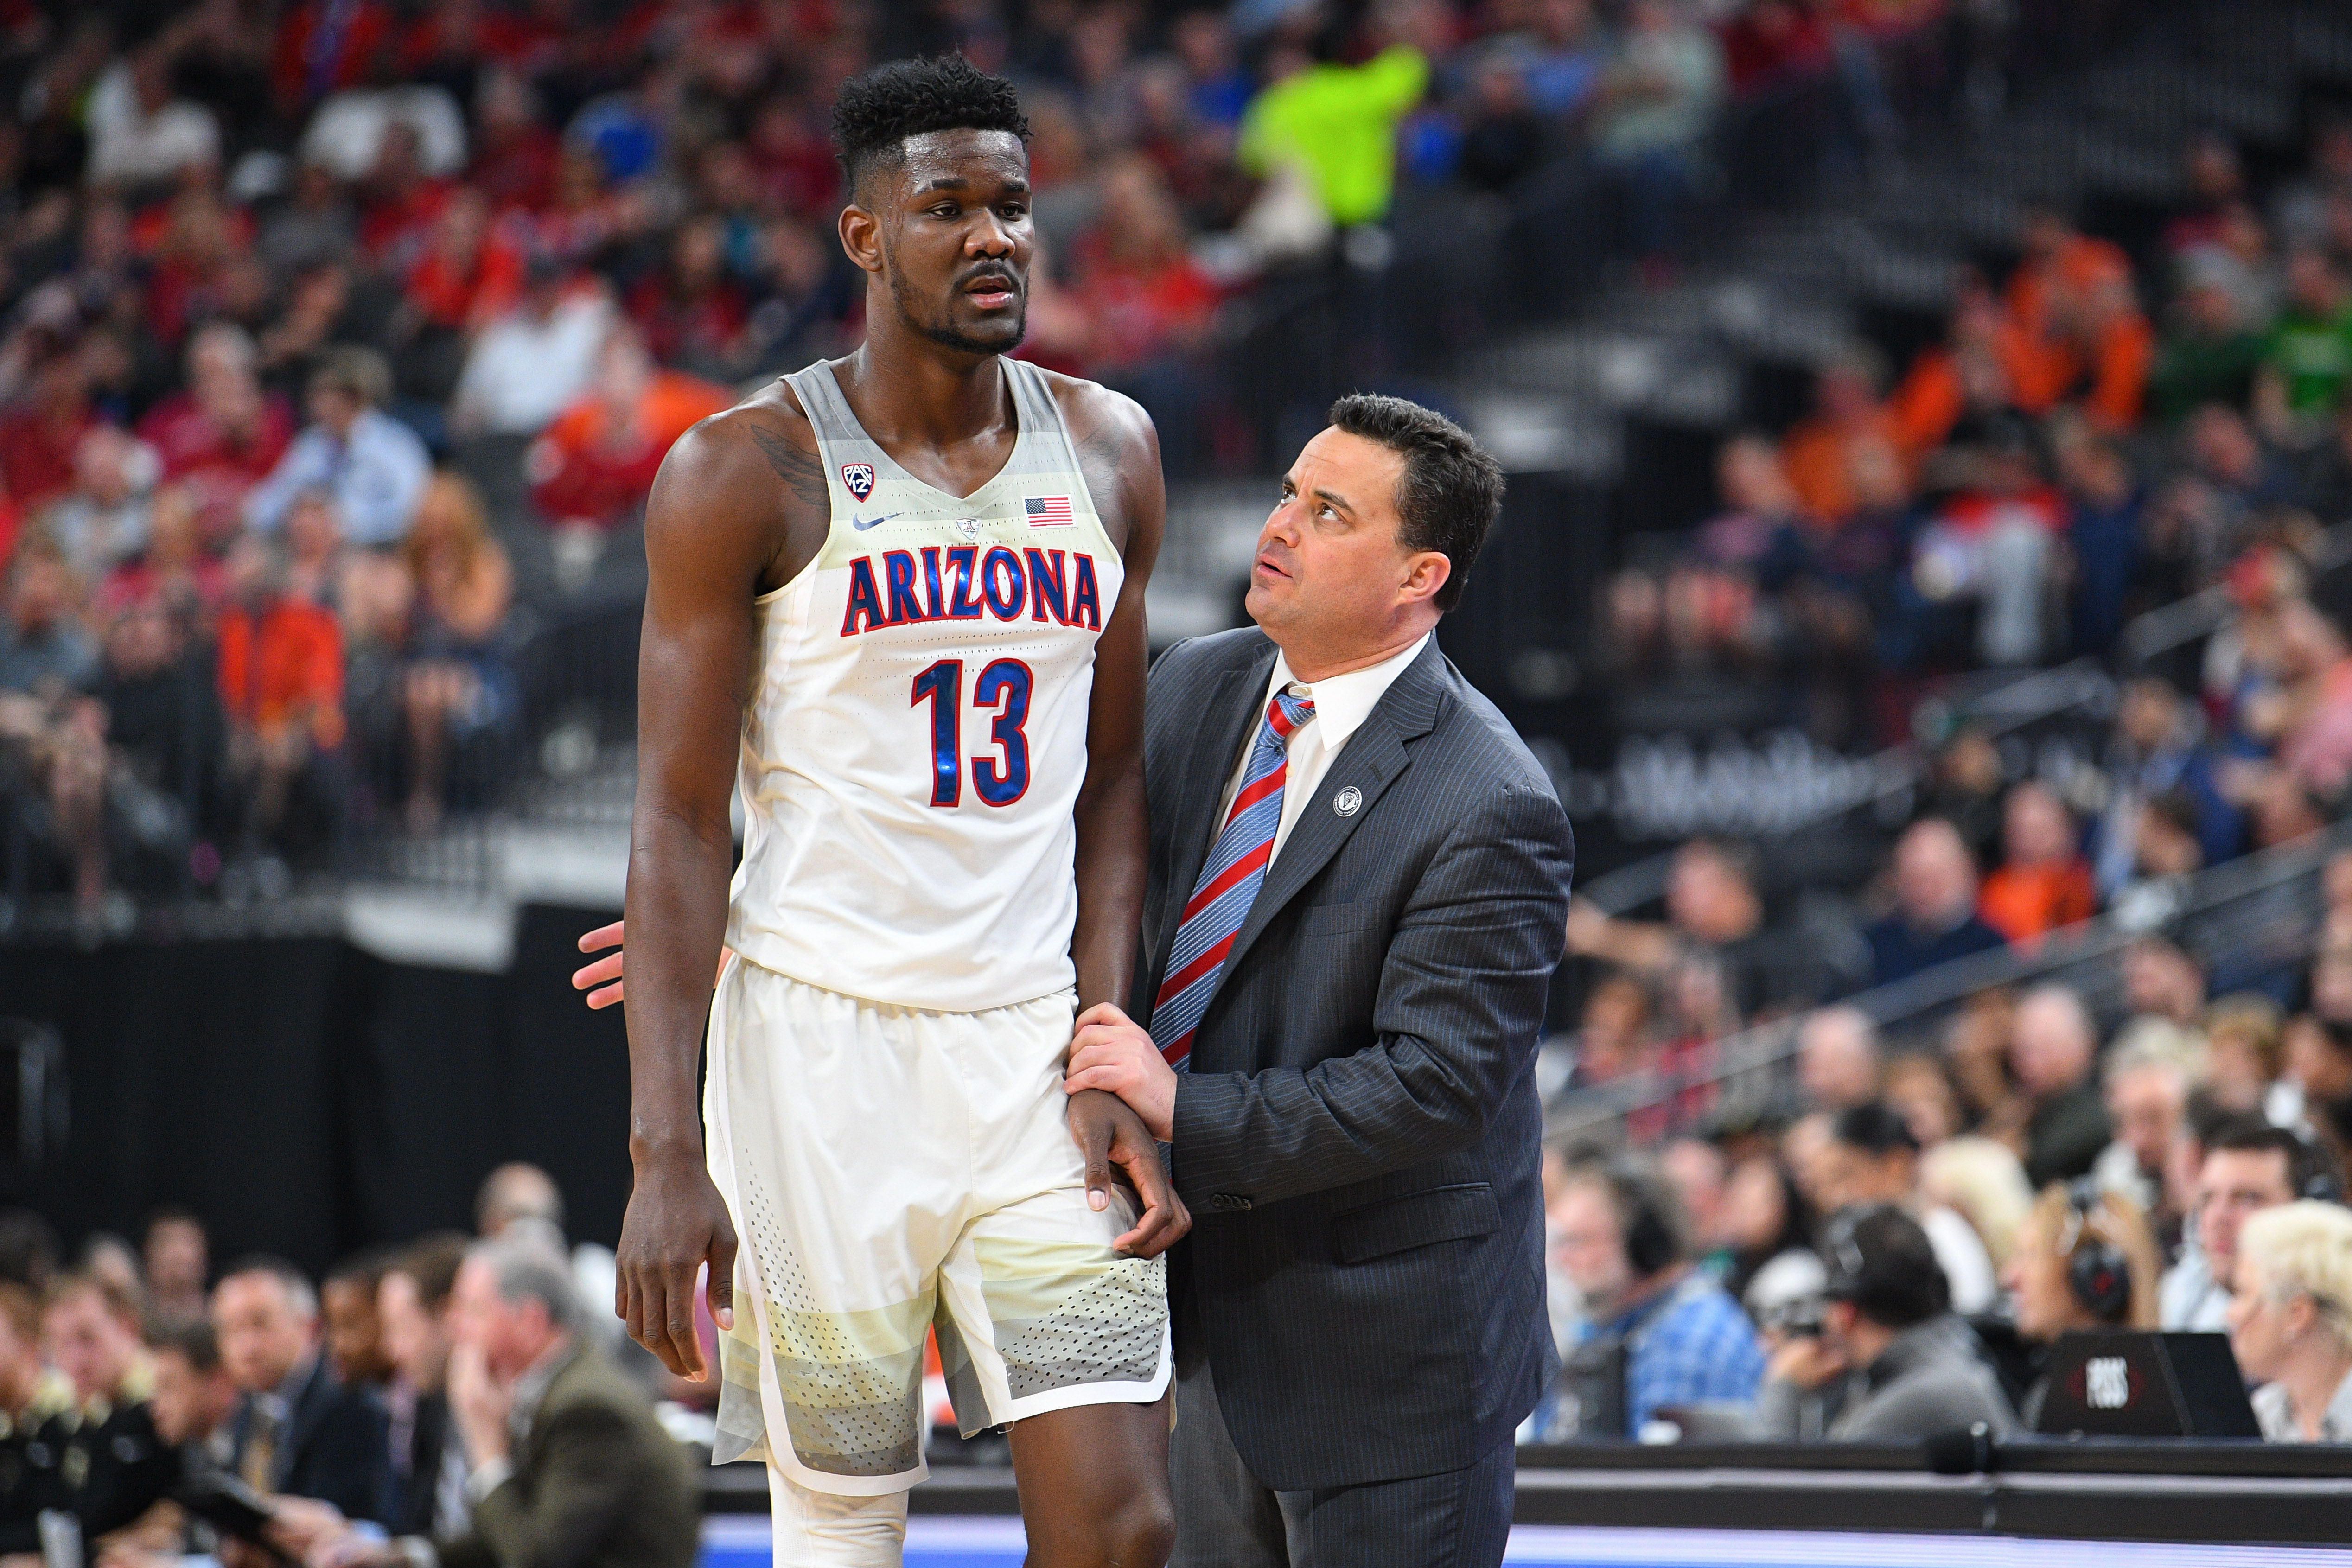 Arizona forward Deandre Ayton is instructed by head coach Sean Miller